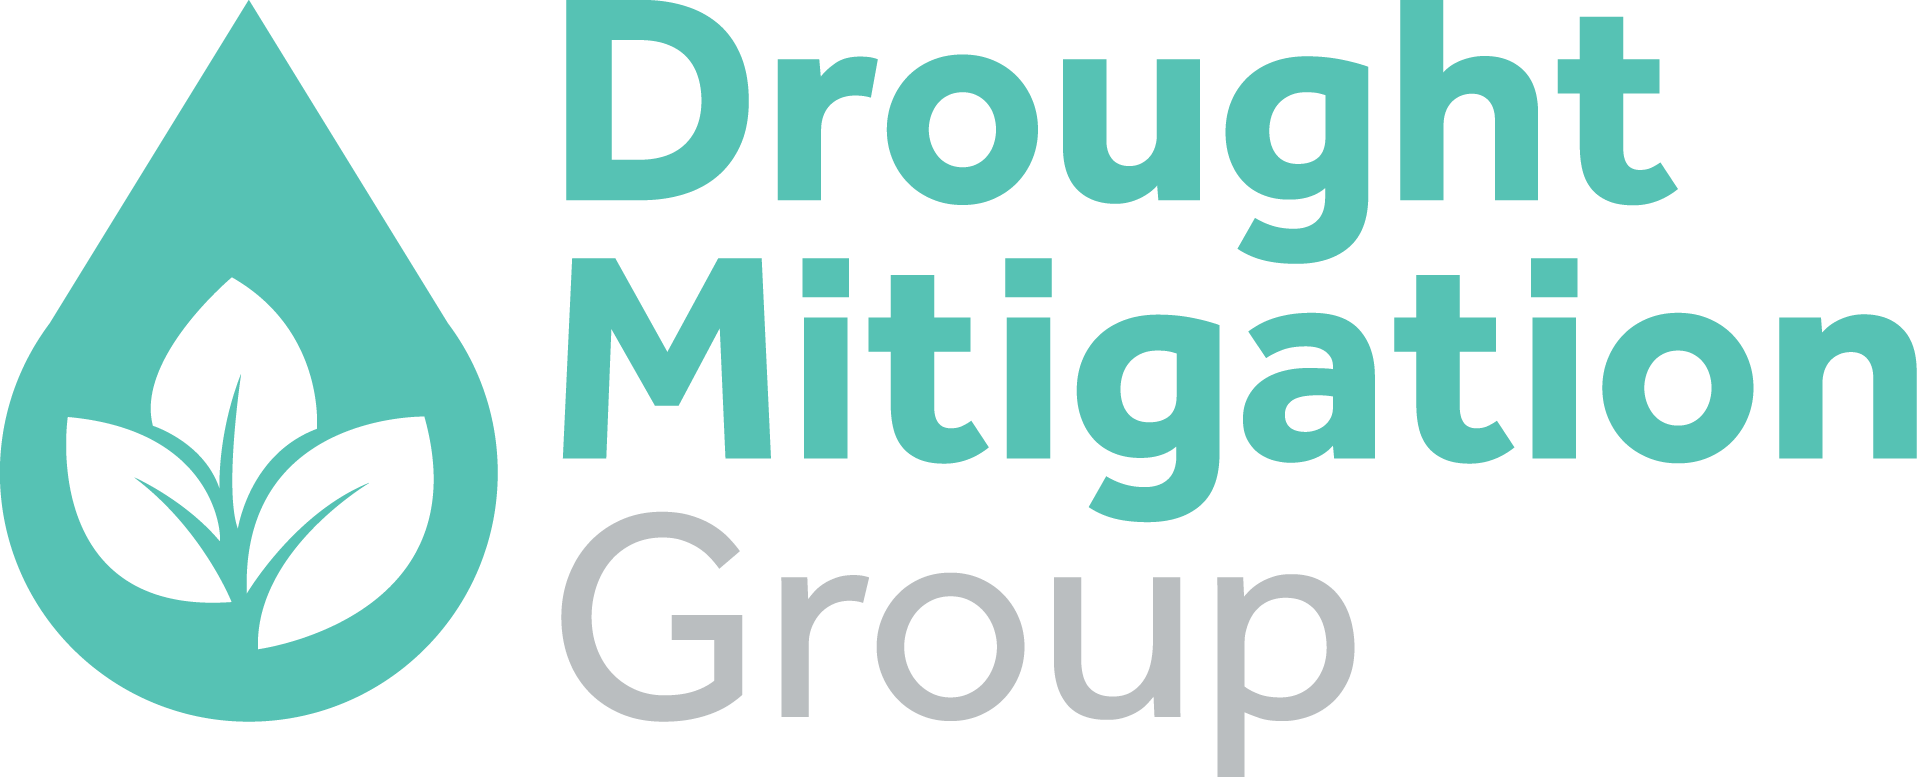 Drought Mitigation Group logo